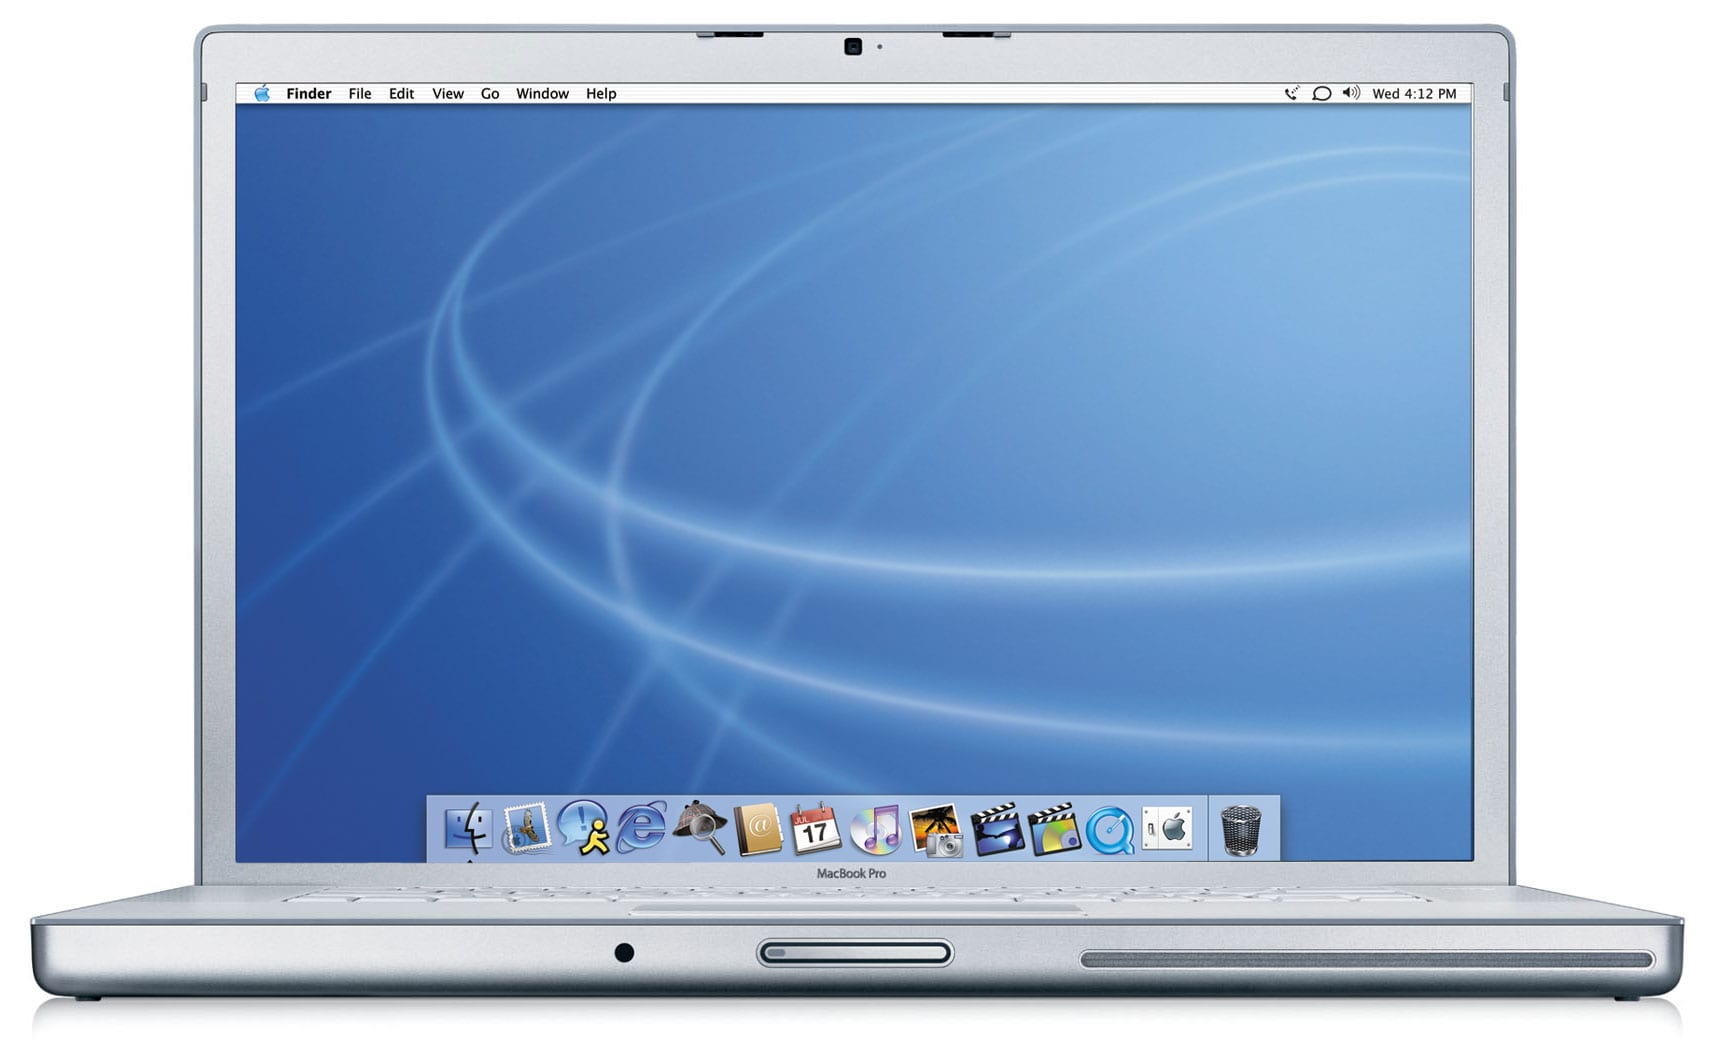 Apple39;s MacBook Pro is a really nice laptop from Apple.